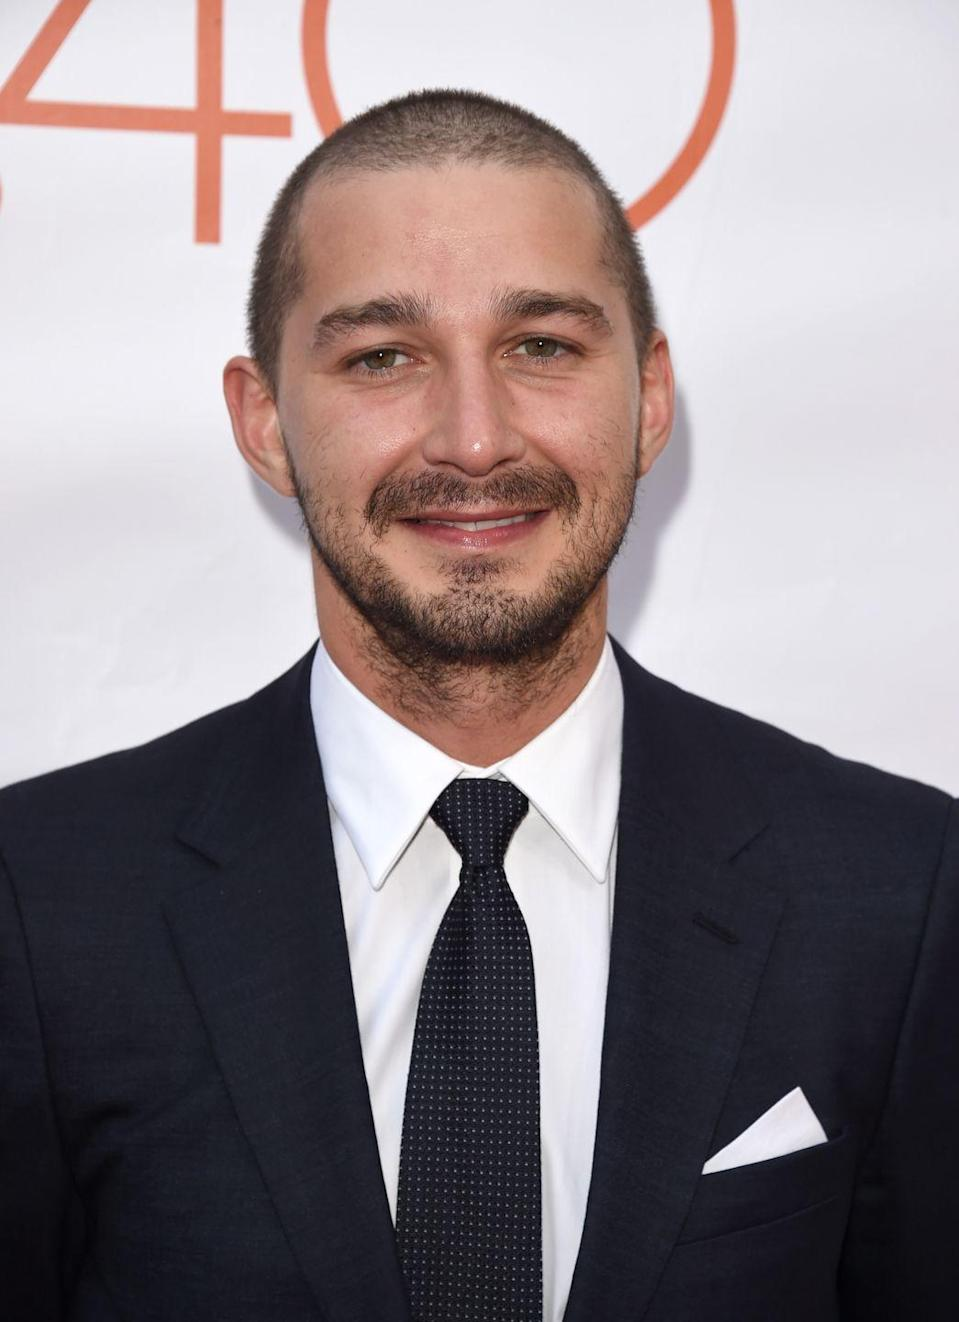 """<p>LaBeouf <a href=""""http://www.smh.com.au/lifestyle/celebrity/shia-labeouf-i-hate-transformers-20100405-rmr6.html"""" rel=""""nofollow noopener"""" target=""""_blank"""" data-ylk=""""slk:admits"""" class=""""link rapid-noclick-resp"""">admits</a>, """"I wasn't impressed with what we did...there were some really wild stunts in it, but the heart was gone. It's just a bunch of fighting robots."""" He also <a href=""""http://www.hollywoodreporter.com/news/shia-labeouf-explains-transformers-nap-841140"""" rel=""""nofollow noopener"""" target=""""_blank"""" data-ylk=""""slk:took a nap"""" class=""""link rapid-noclick-resp"""">took a nap</a> during the screening. </p>"""